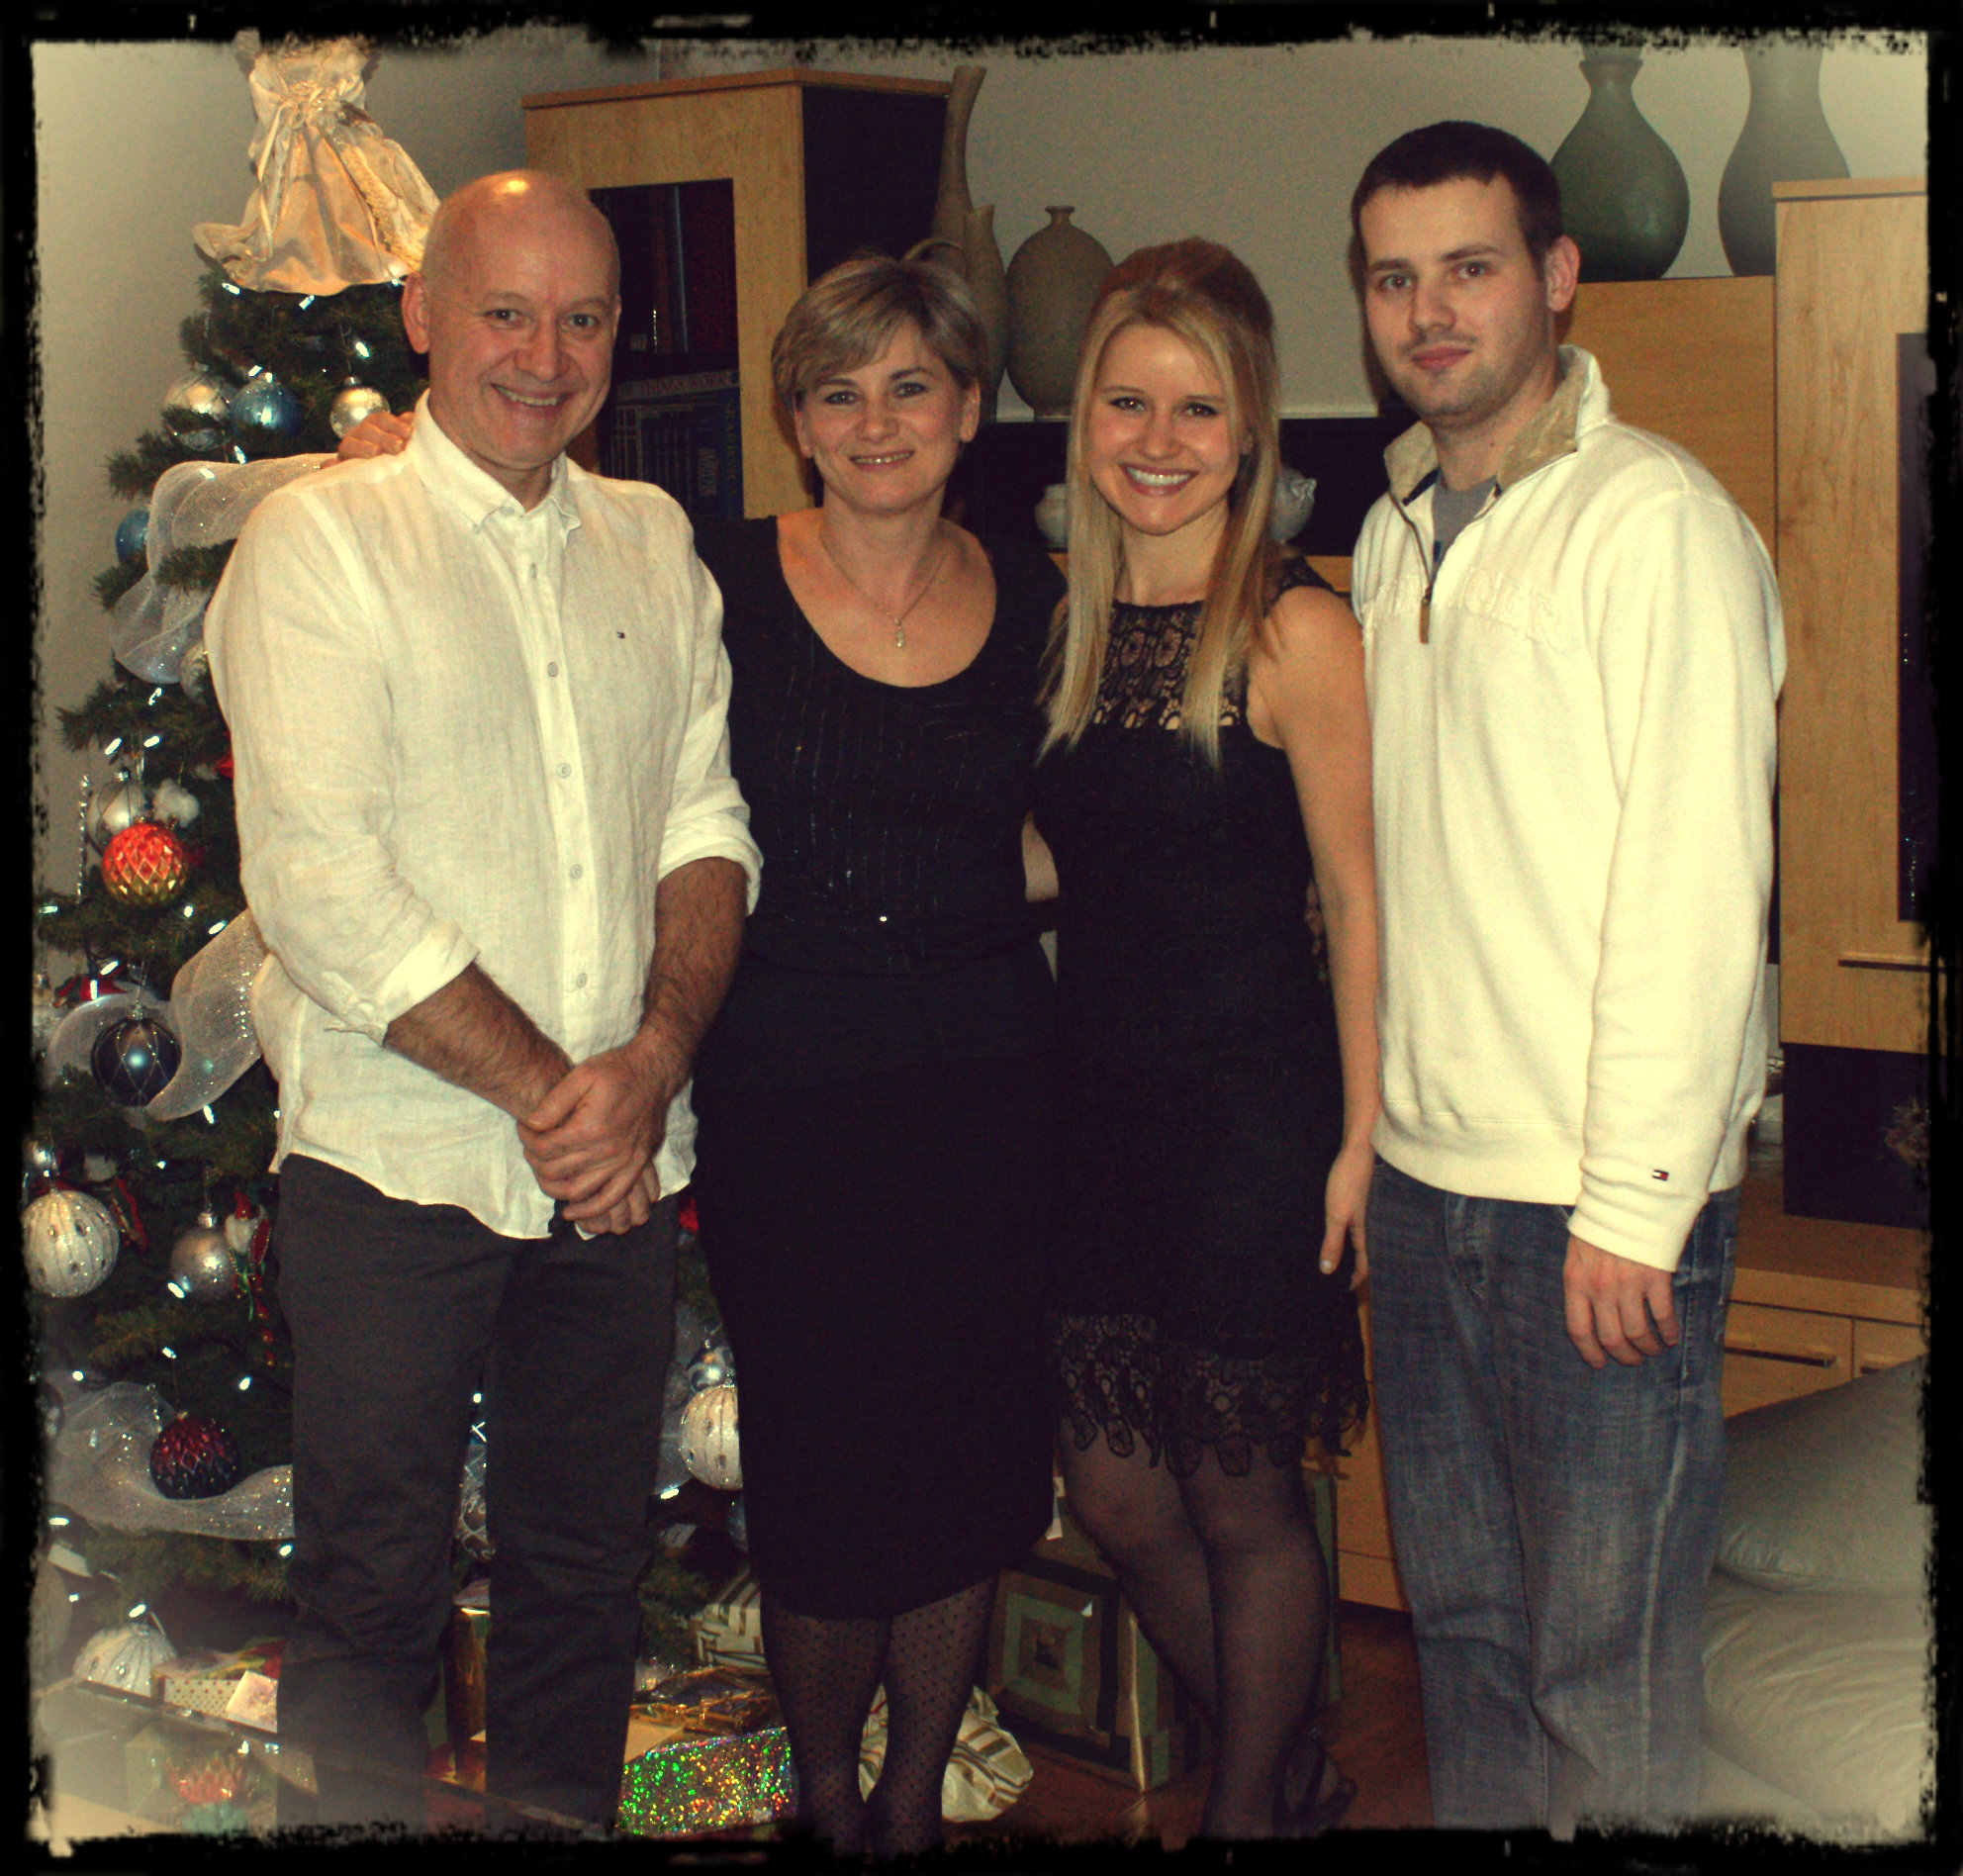 As excited as I am to be back in Ottawa, I miss these people. - Family on Christmas Eve 2012